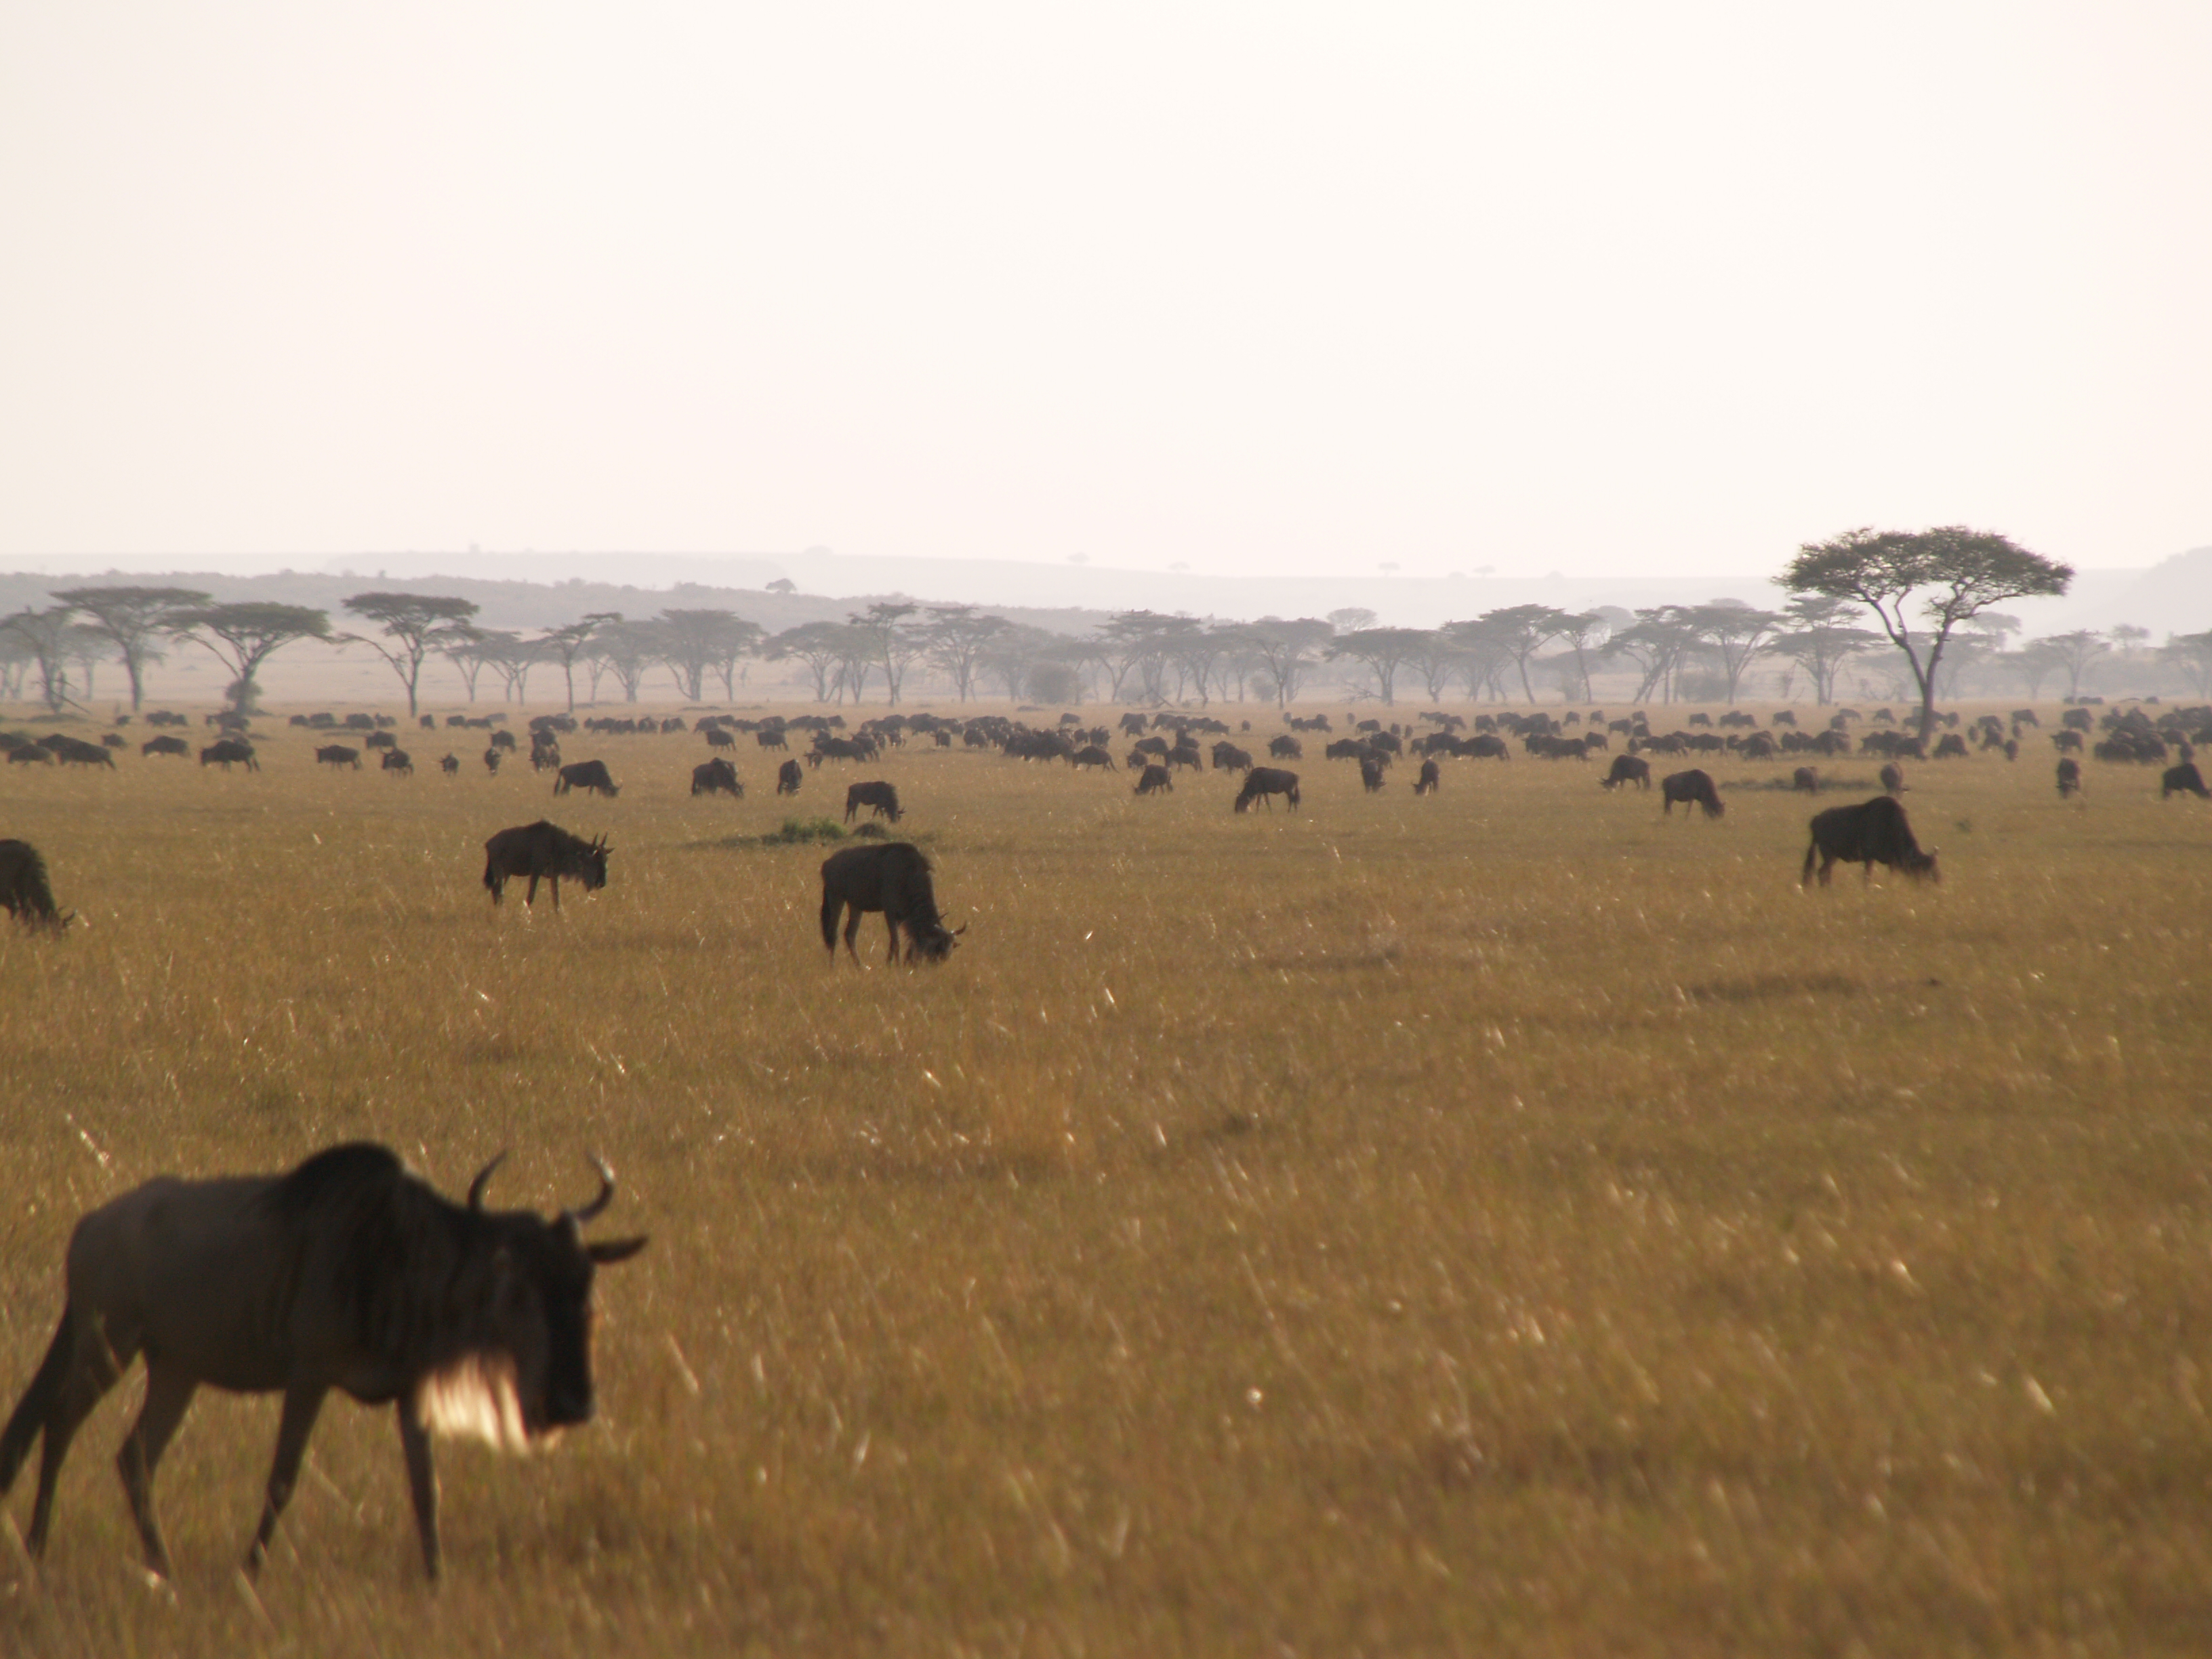 early morning picture of wildebeest grazing